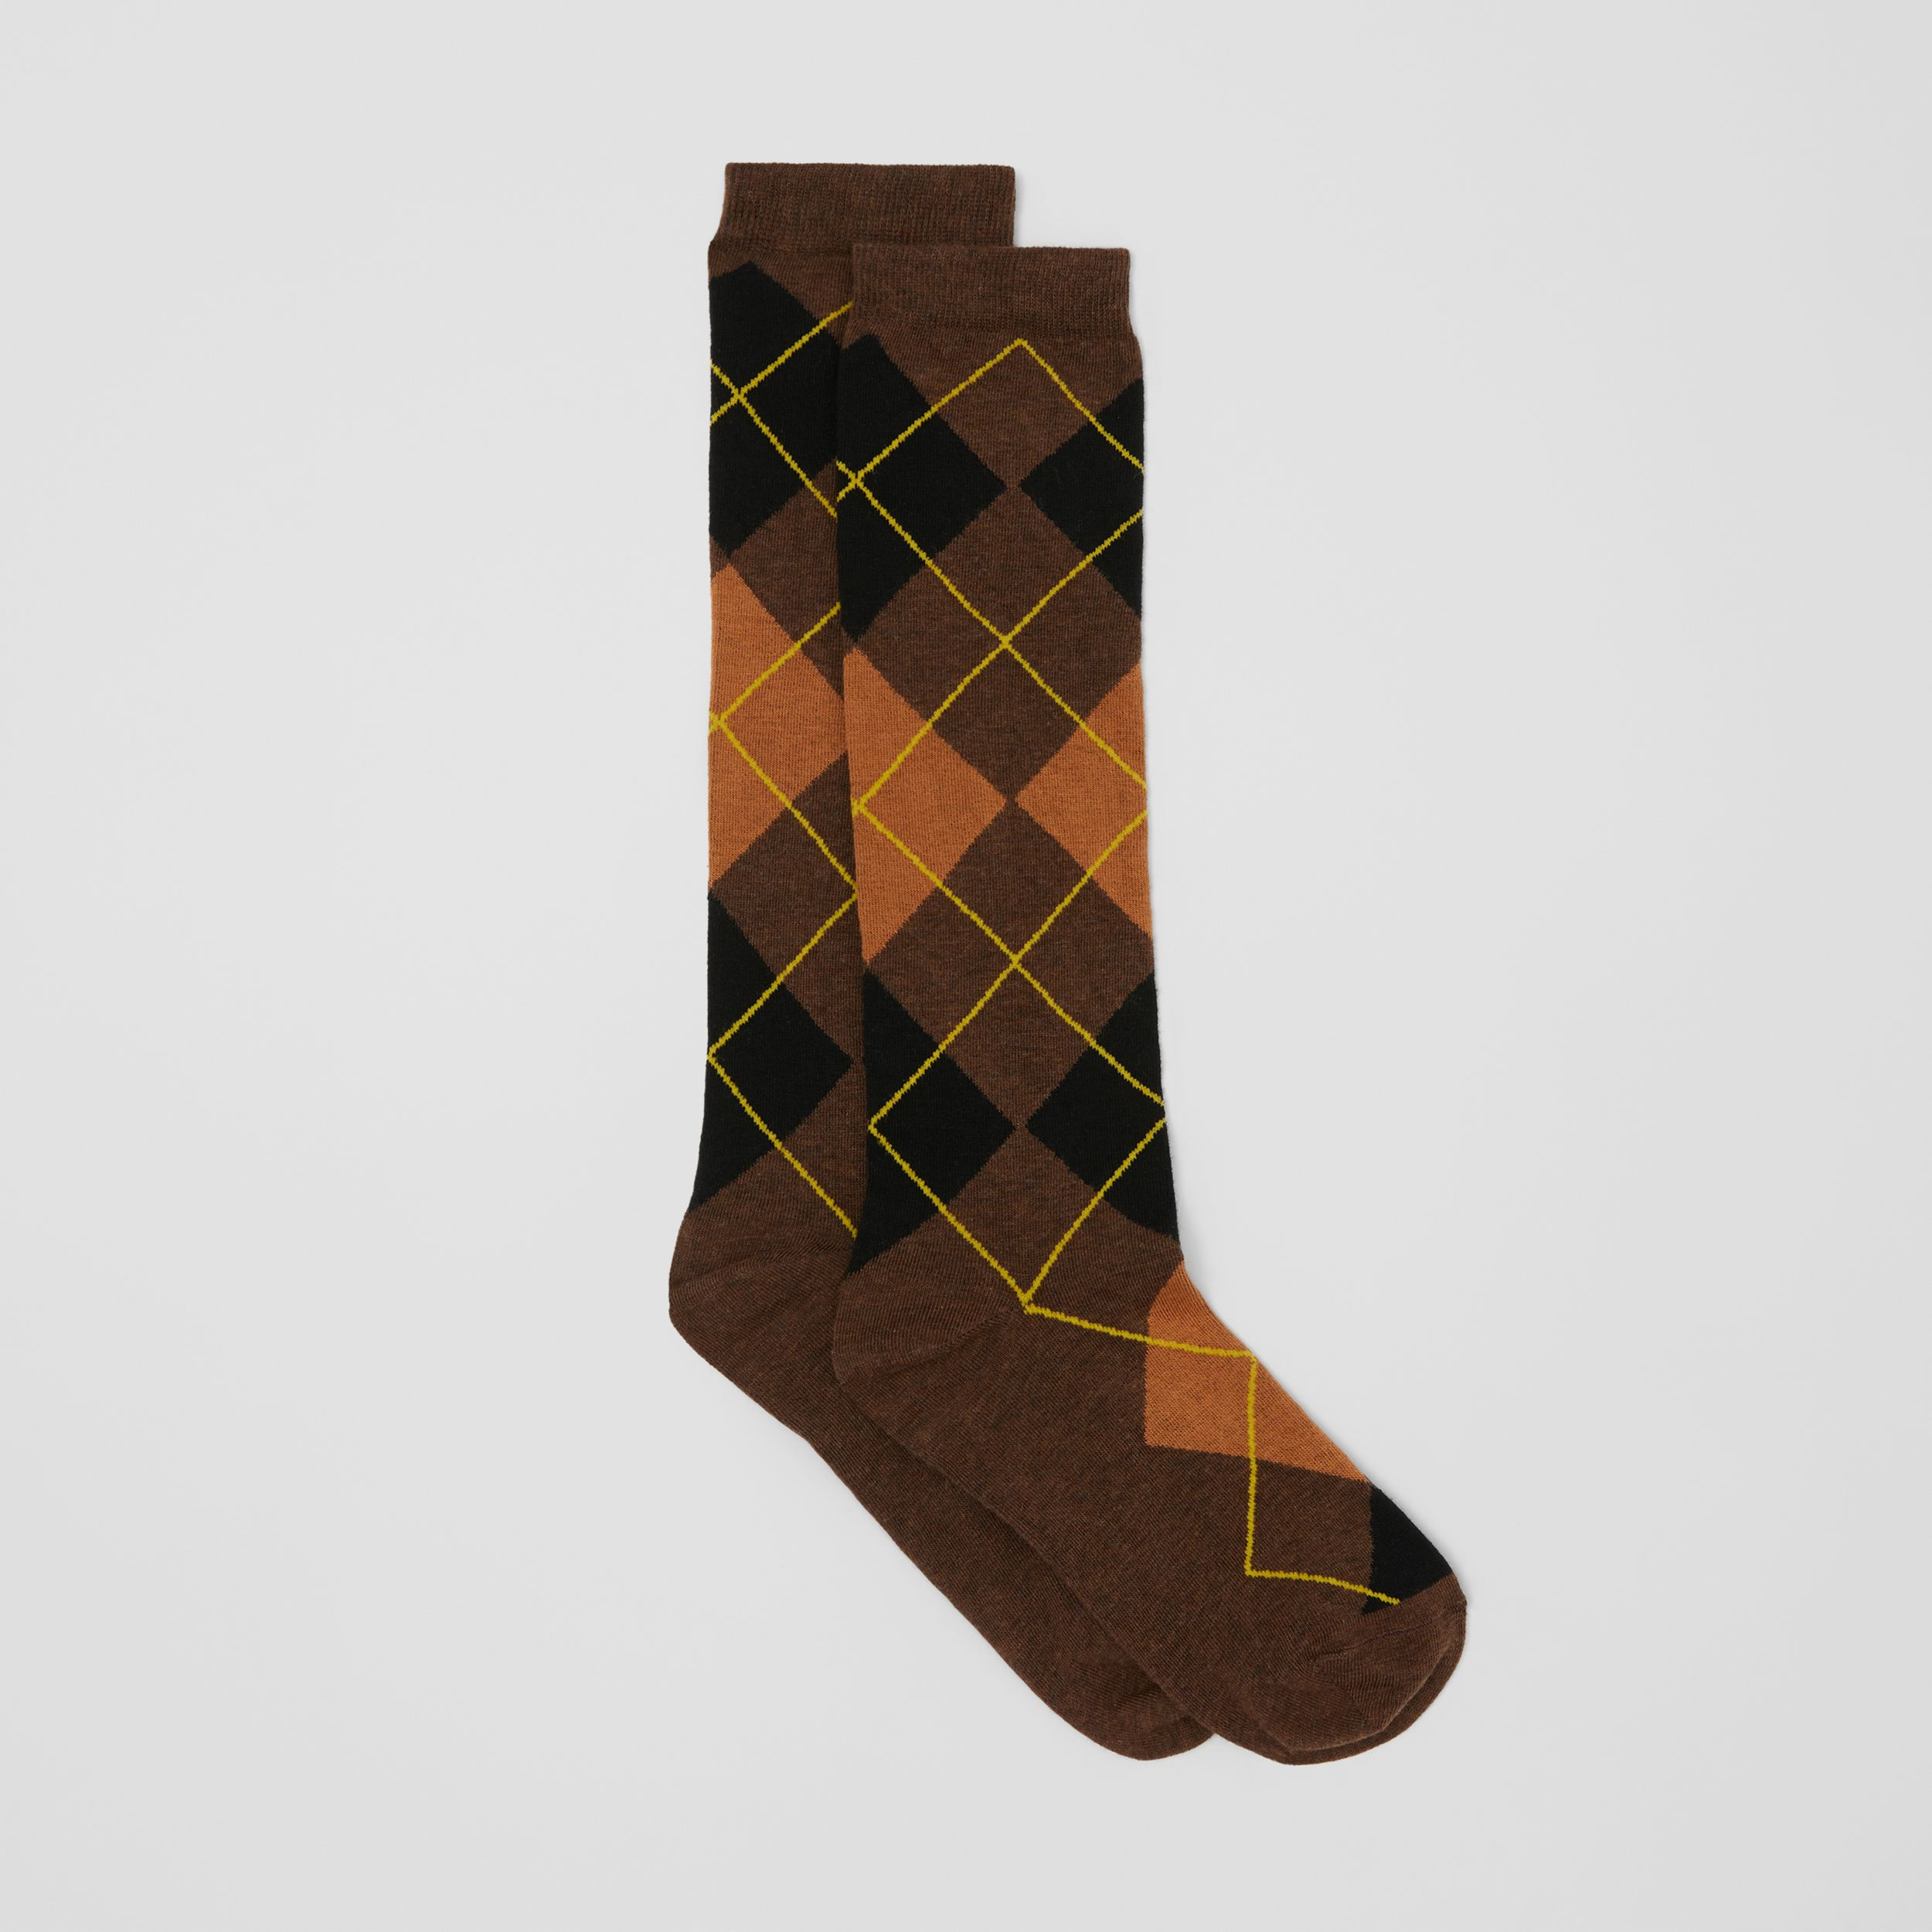 Argyle Intarsia Cotton Blend Calf-length Socks in Brown | Burberry - 3